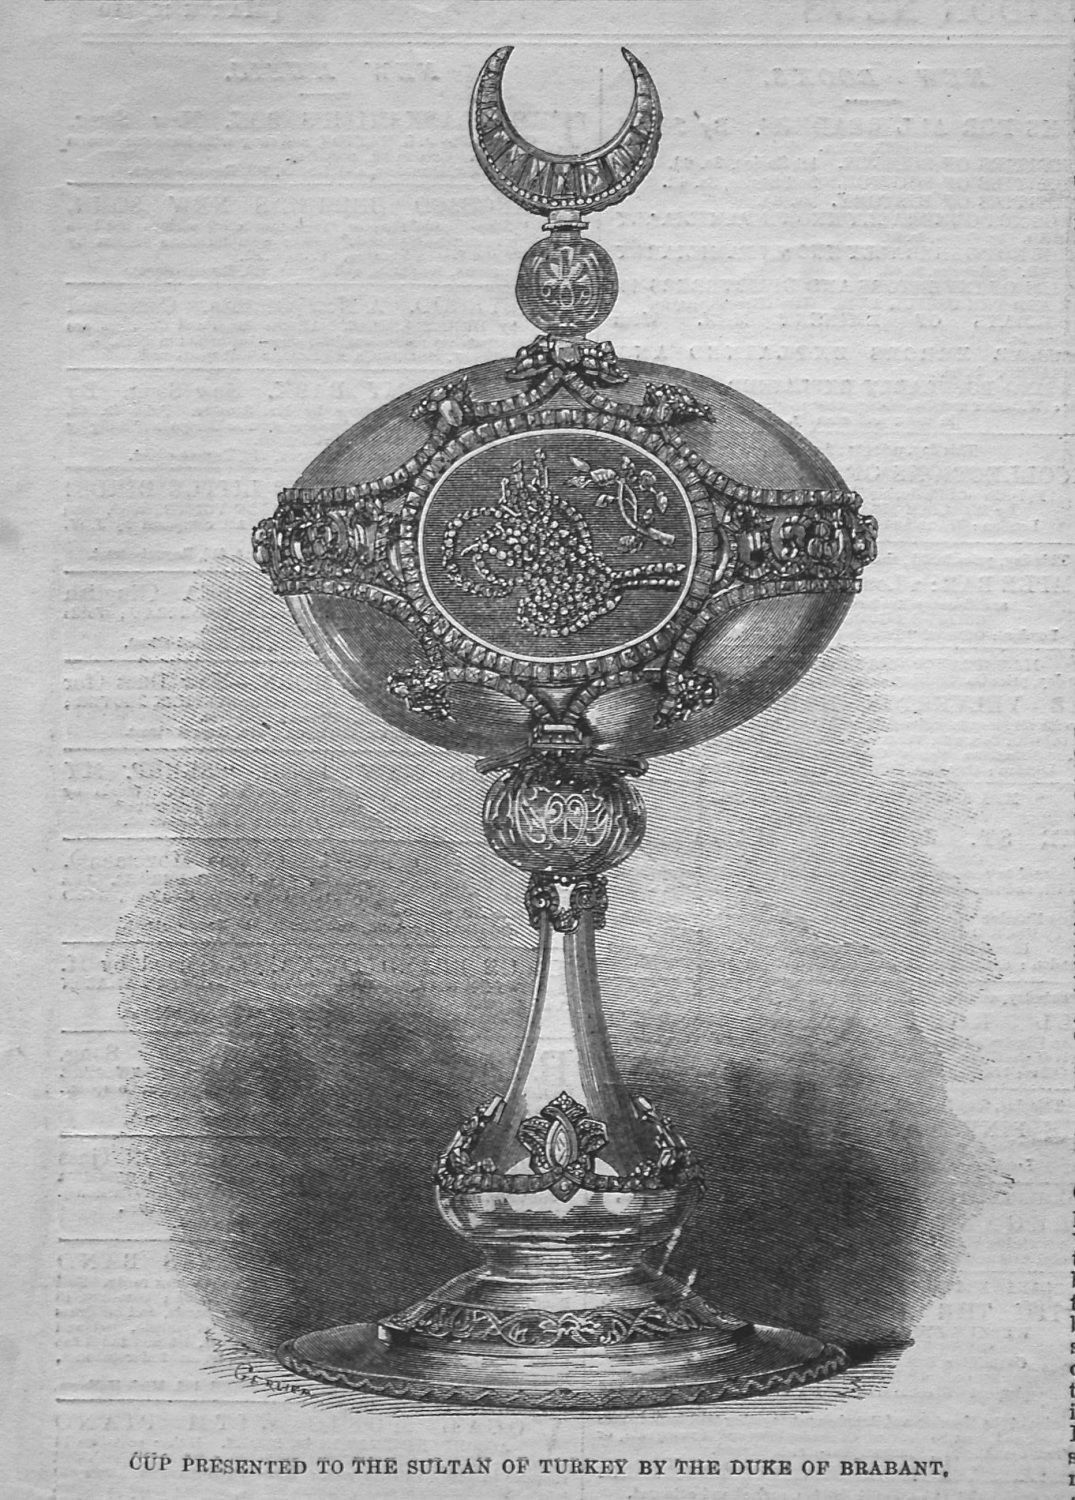 Cup Presented to the Sultan of Turkey by the Duke of Brabant. 1861